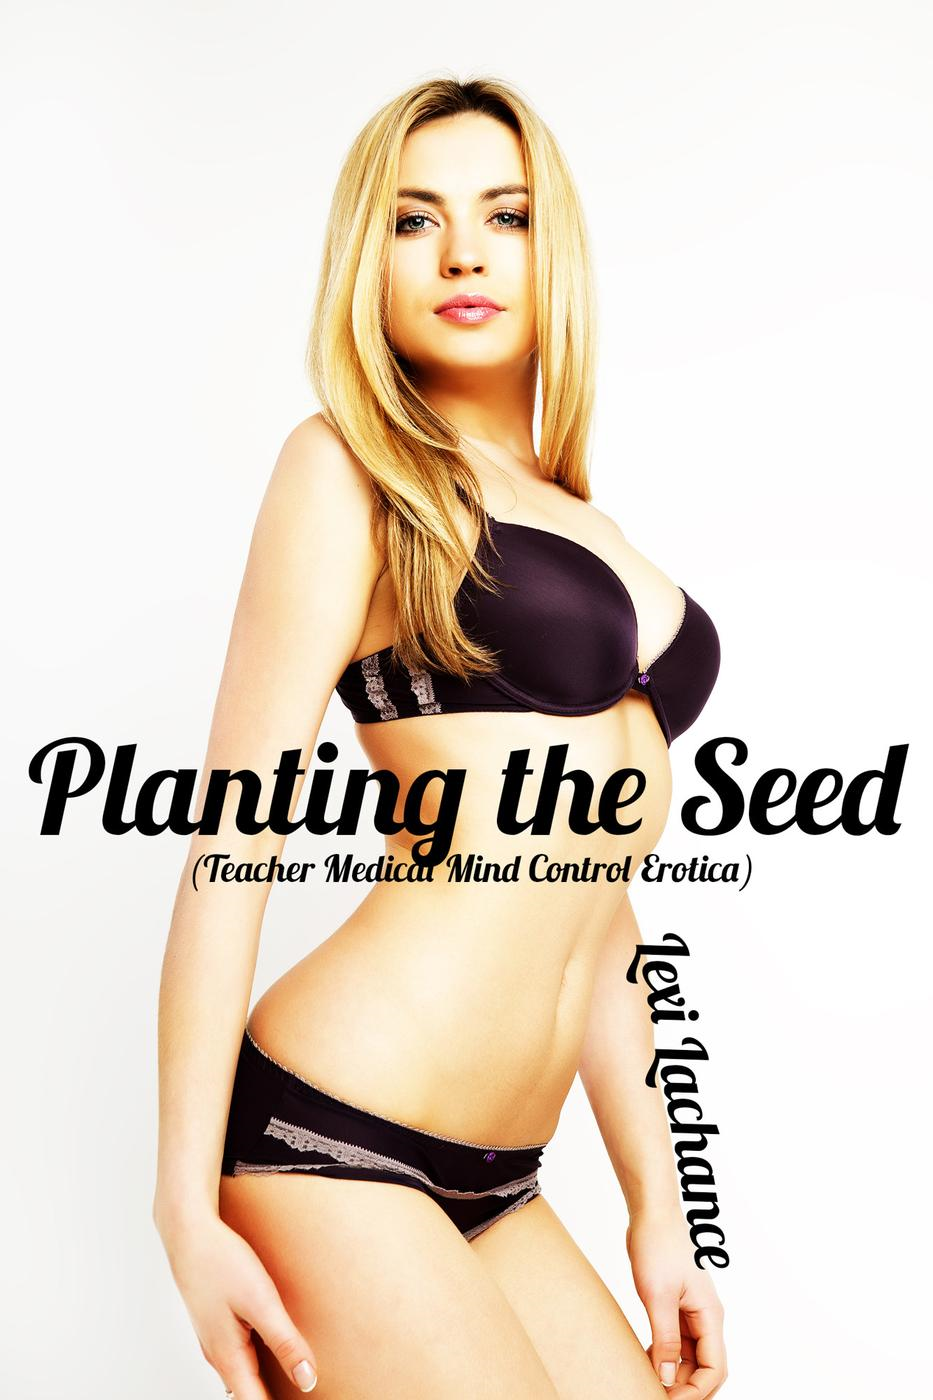 Lexi Lachance - Planting the Seed (Teacher Medical Mind Control Taboo Erotica)